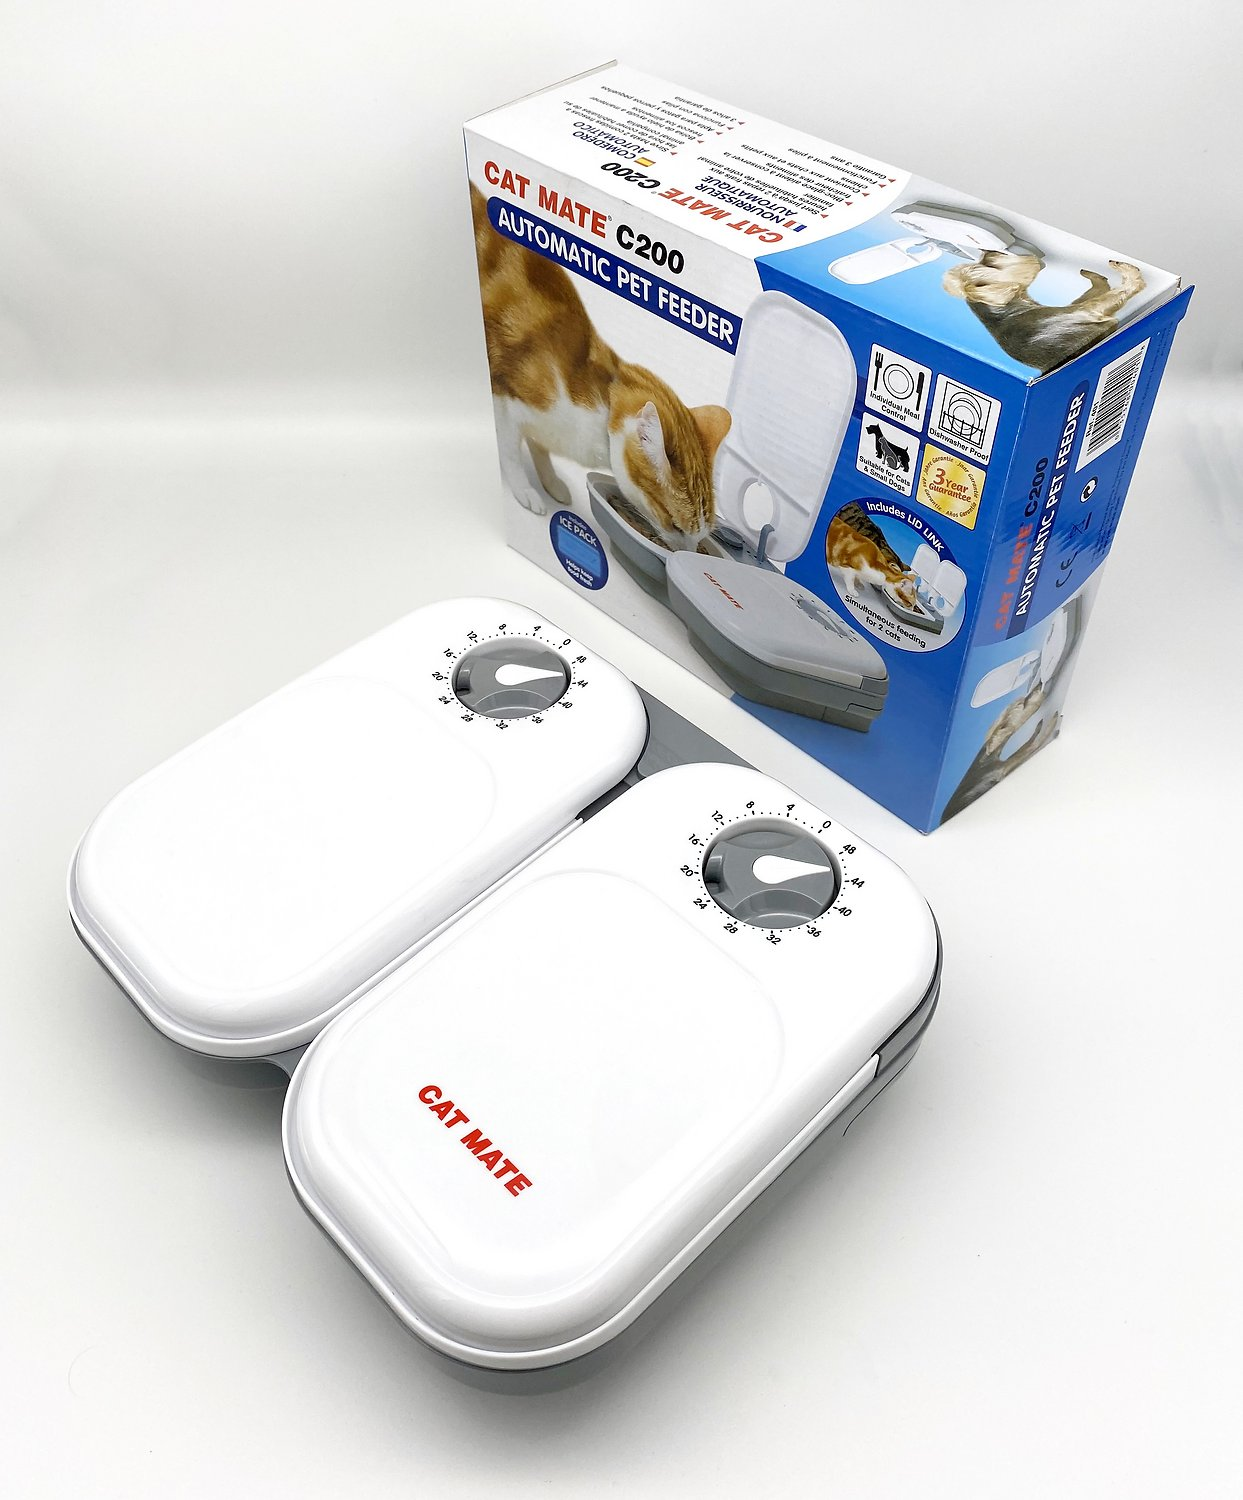 Cat Mate C20 2 Bowl Automatic Pet Feeder 48 Hour Chewy Com